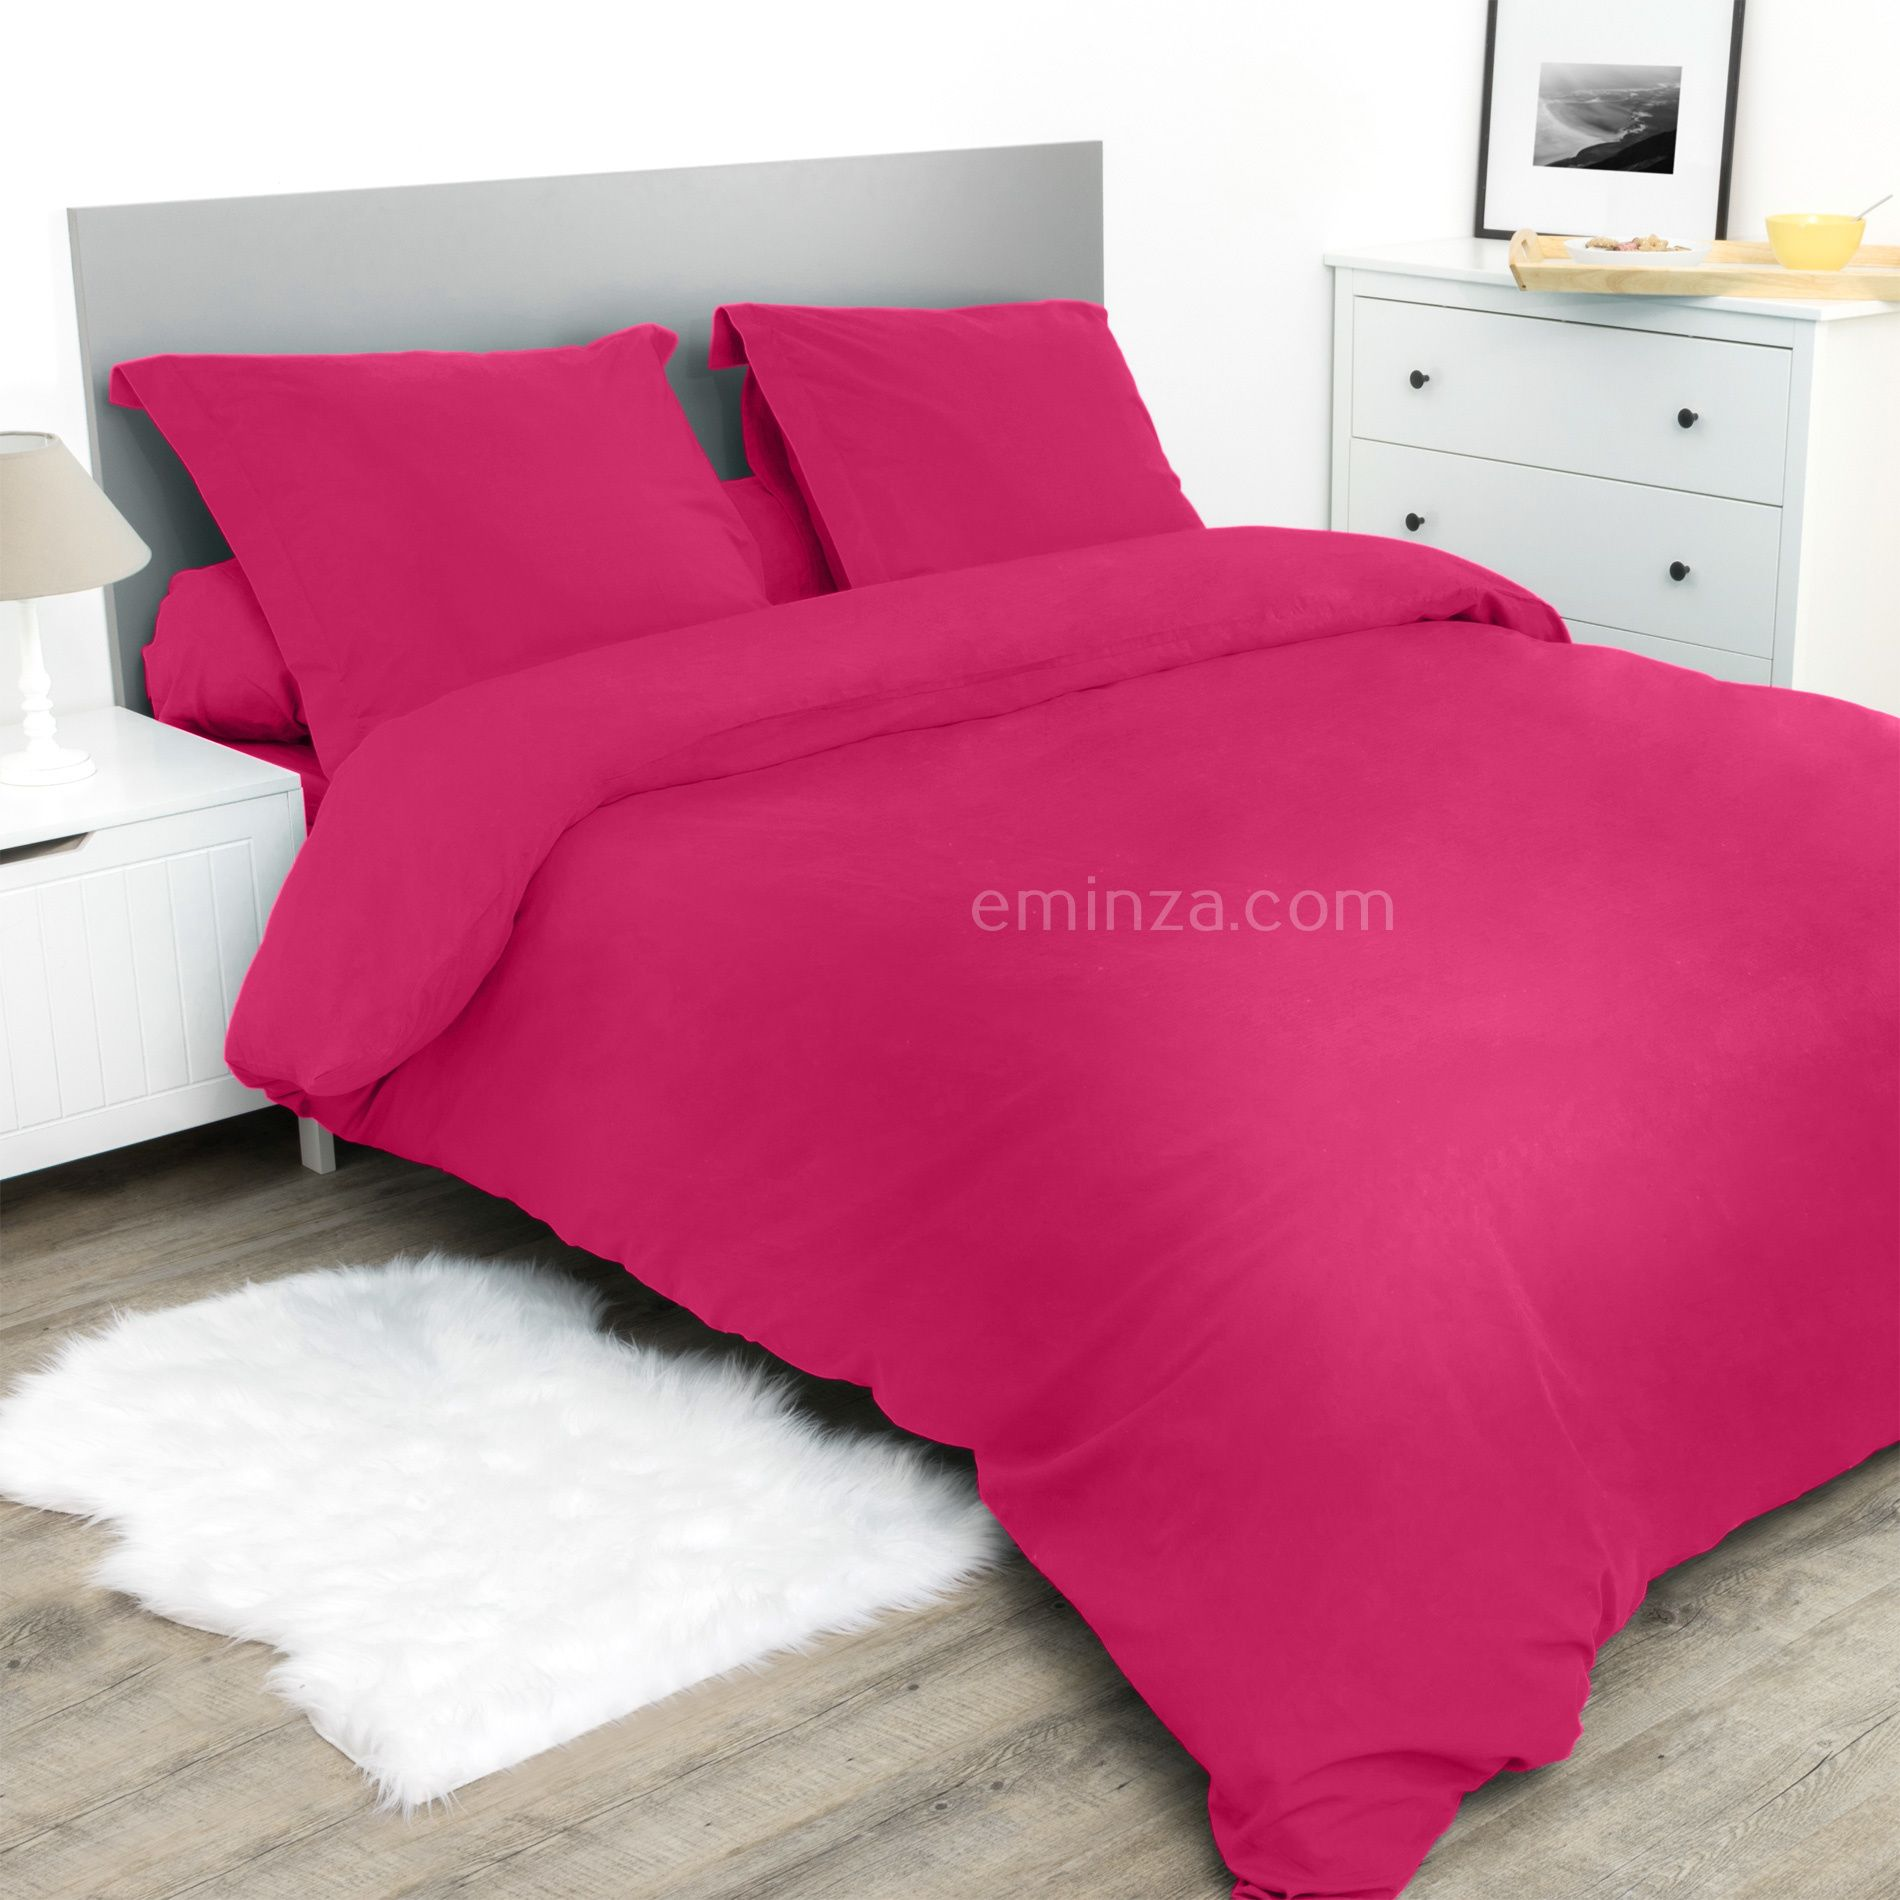 drap housse 160 cm confort fuchsia drap housse eminza. Black Bedroom Furniture Sets. Home Design Ideas